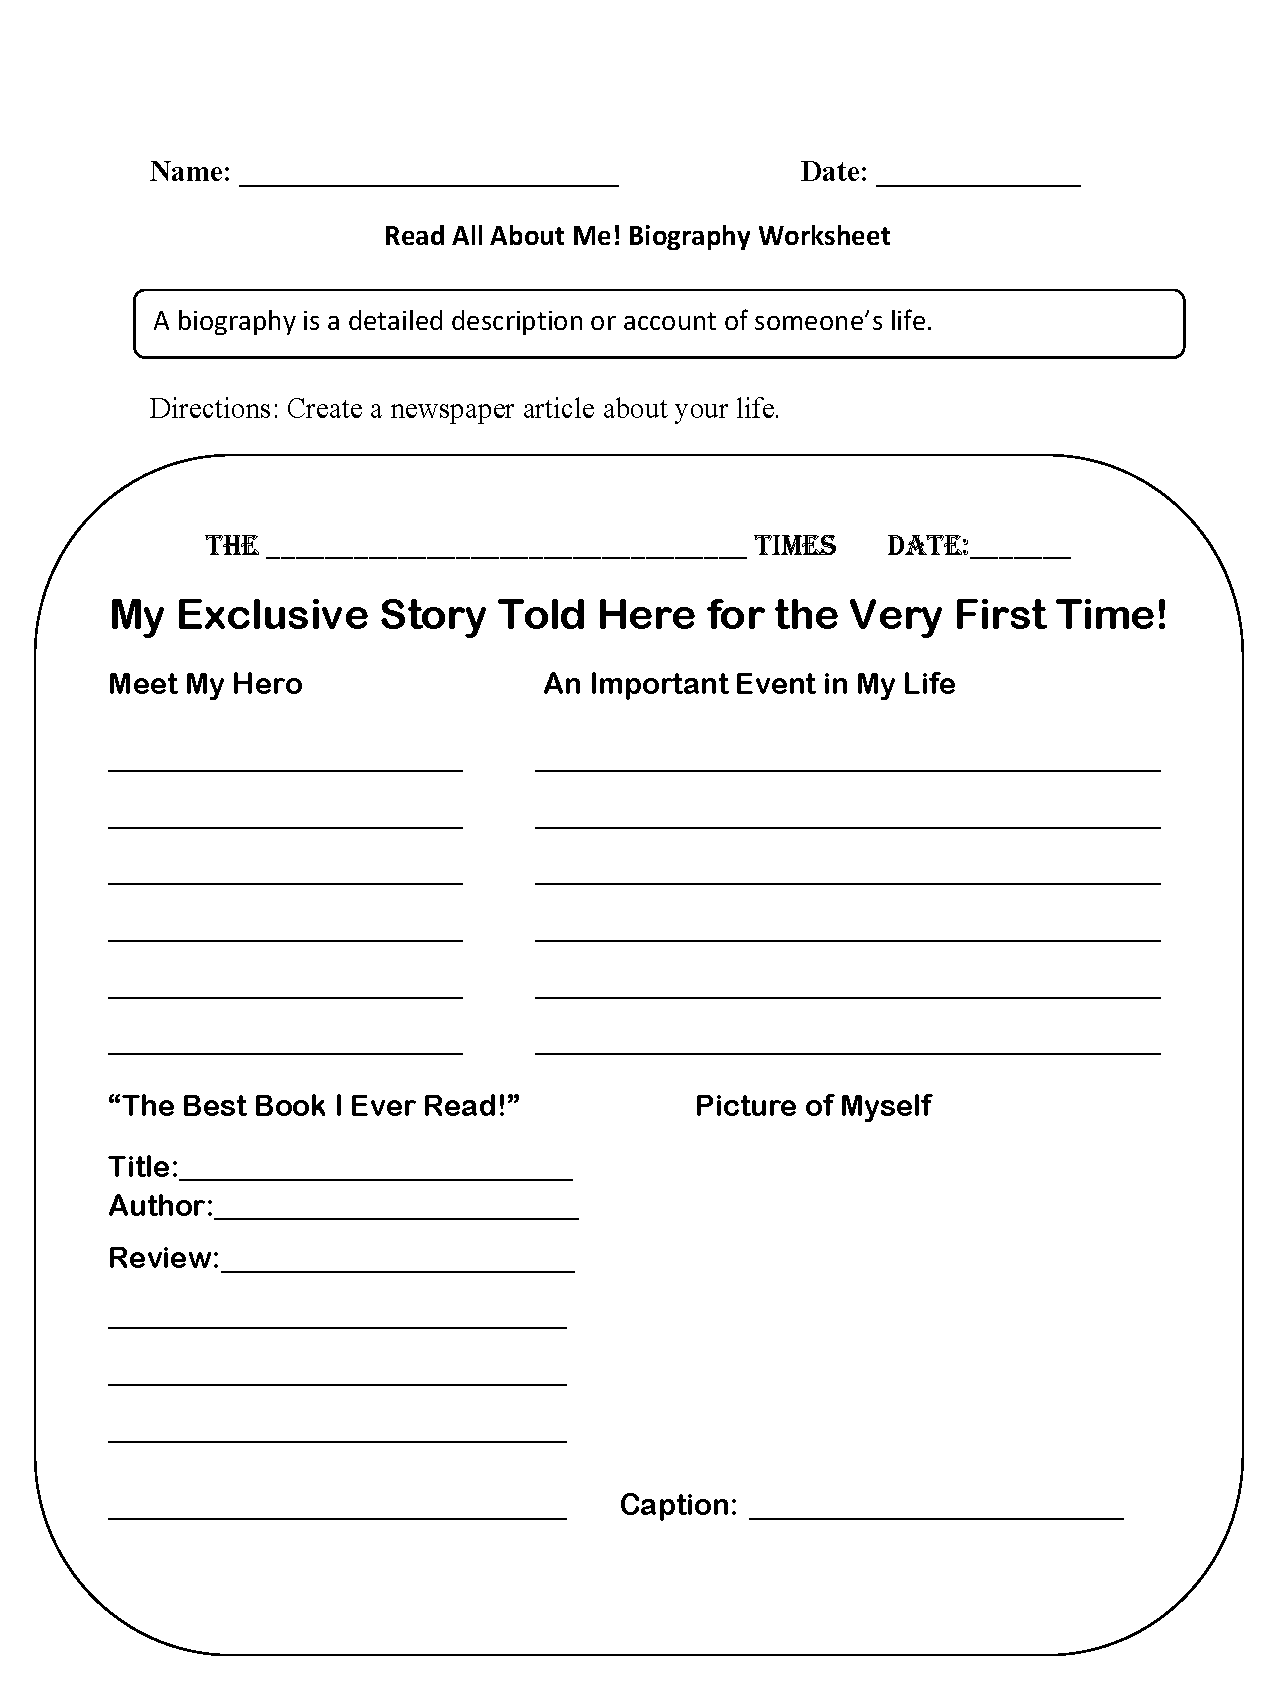 Read All About Me Back To School Worksheets